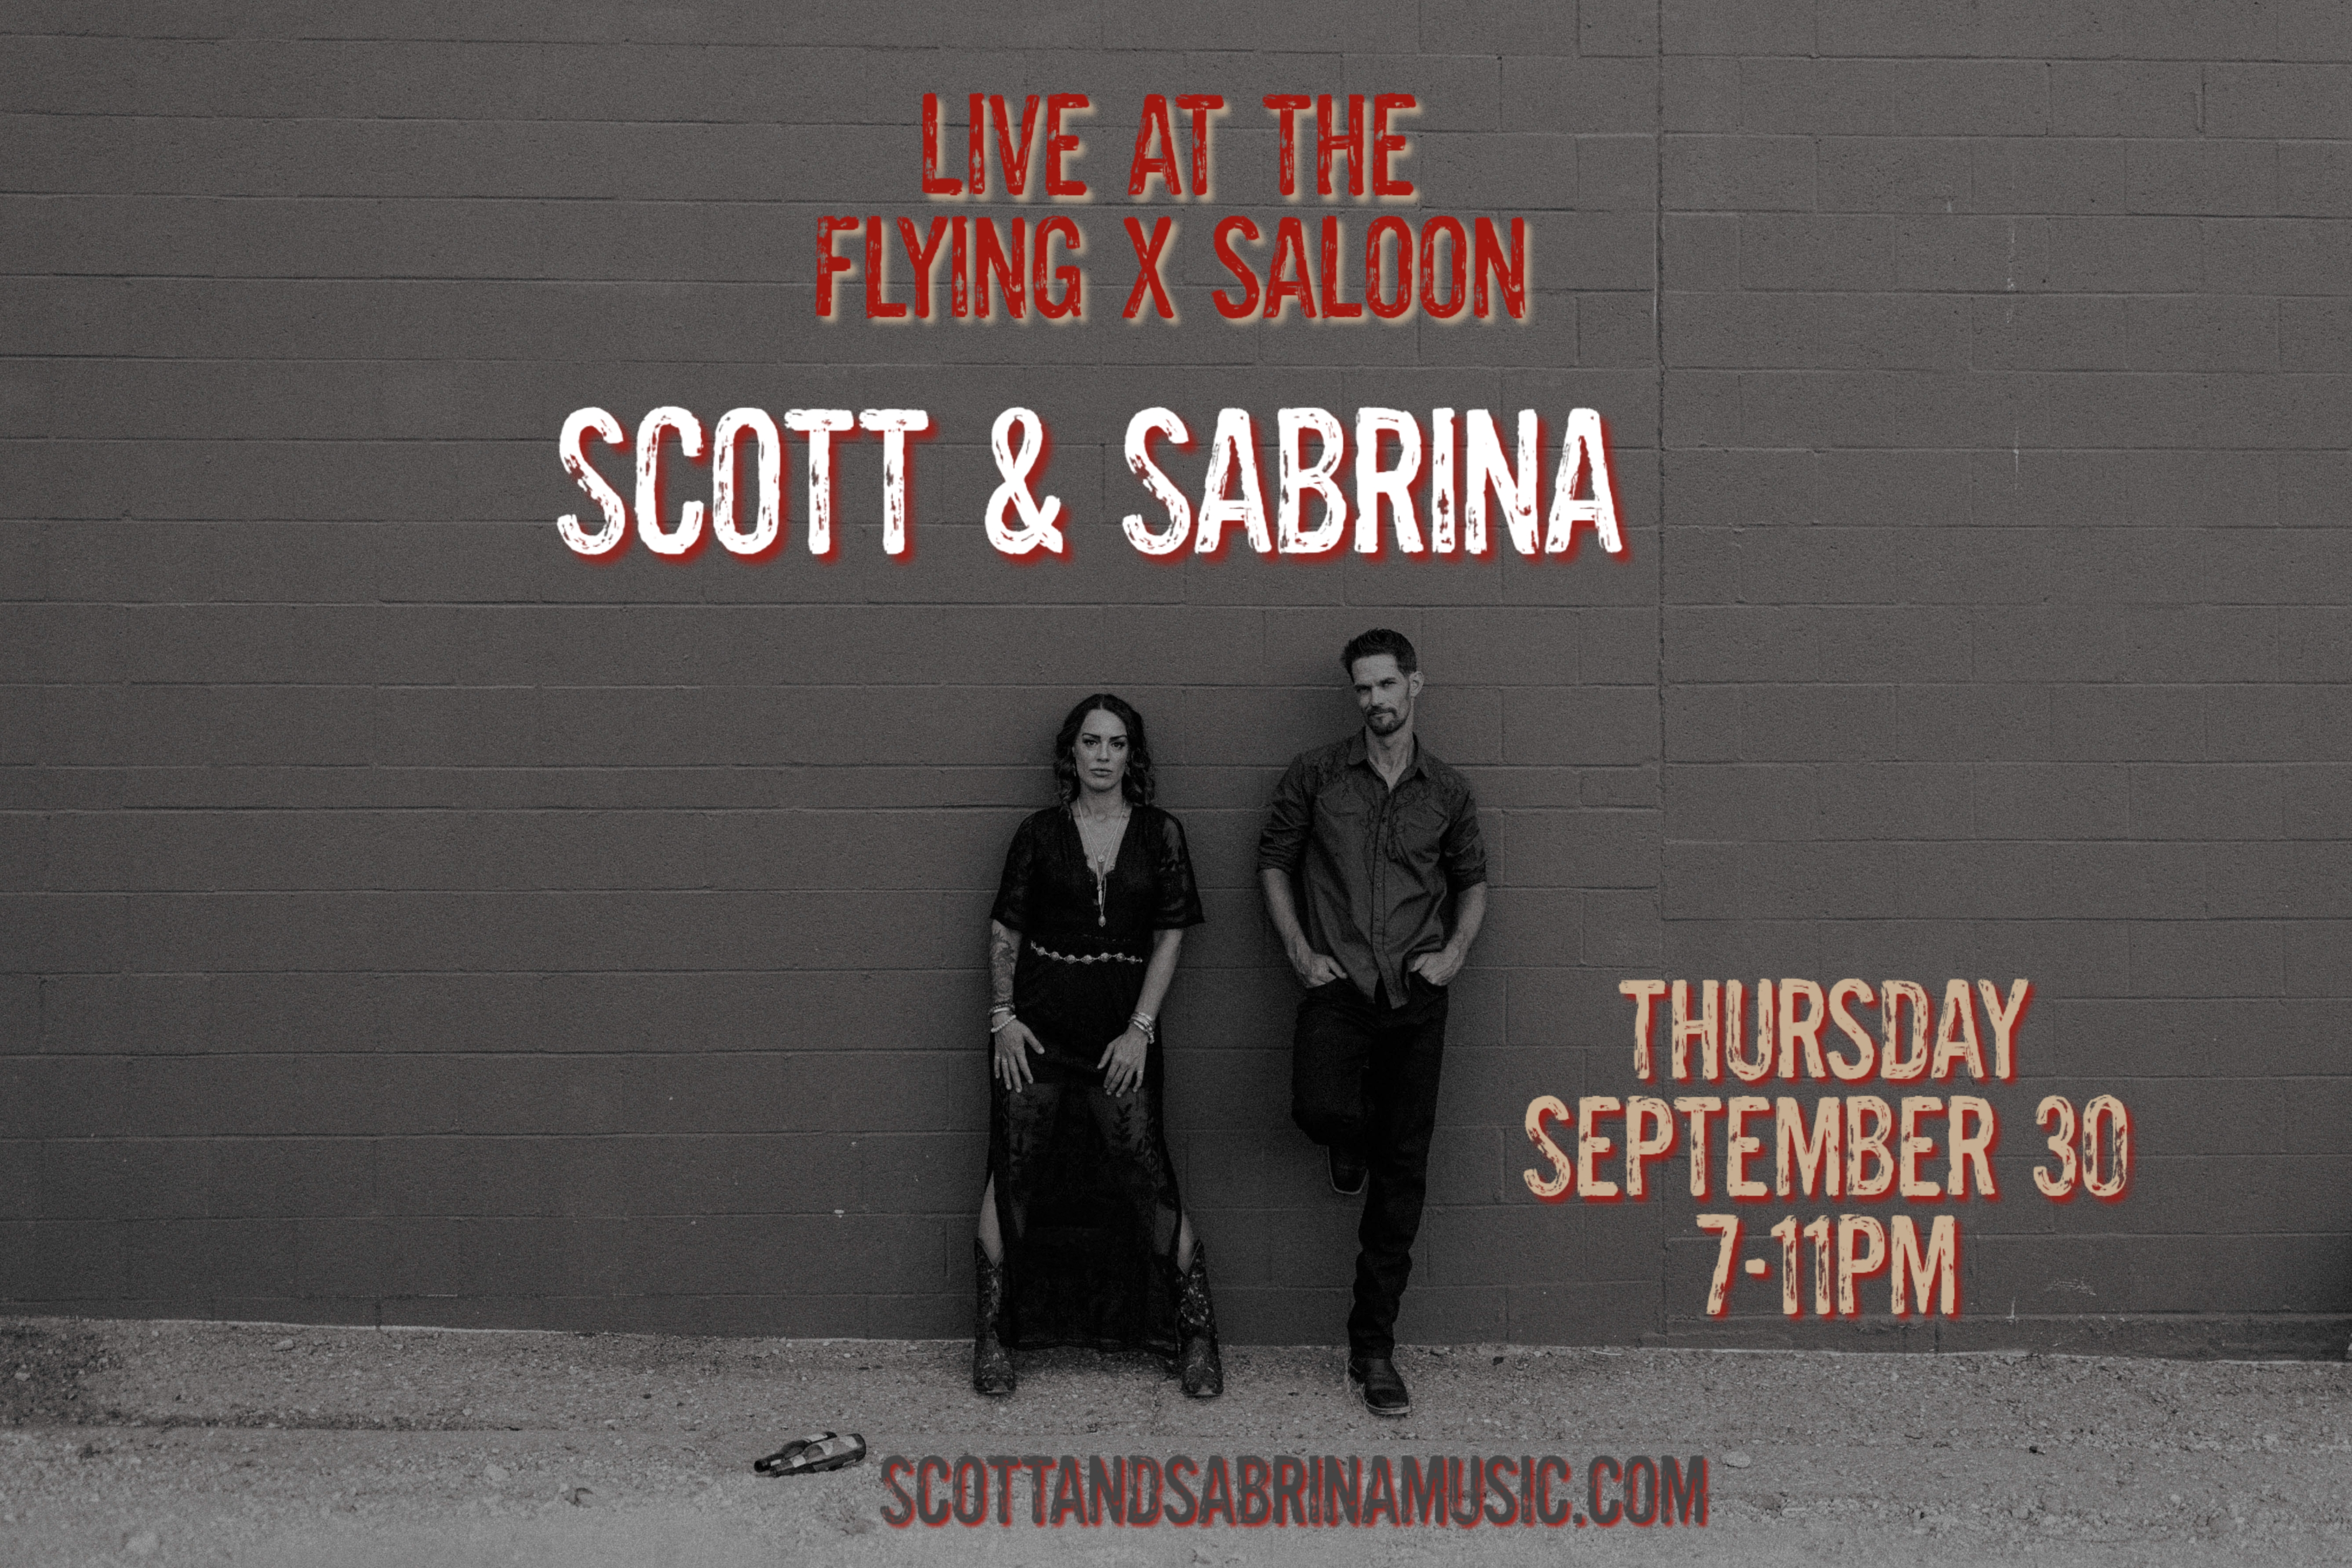 Scott and Sabrina Live at the Flying X Saloon